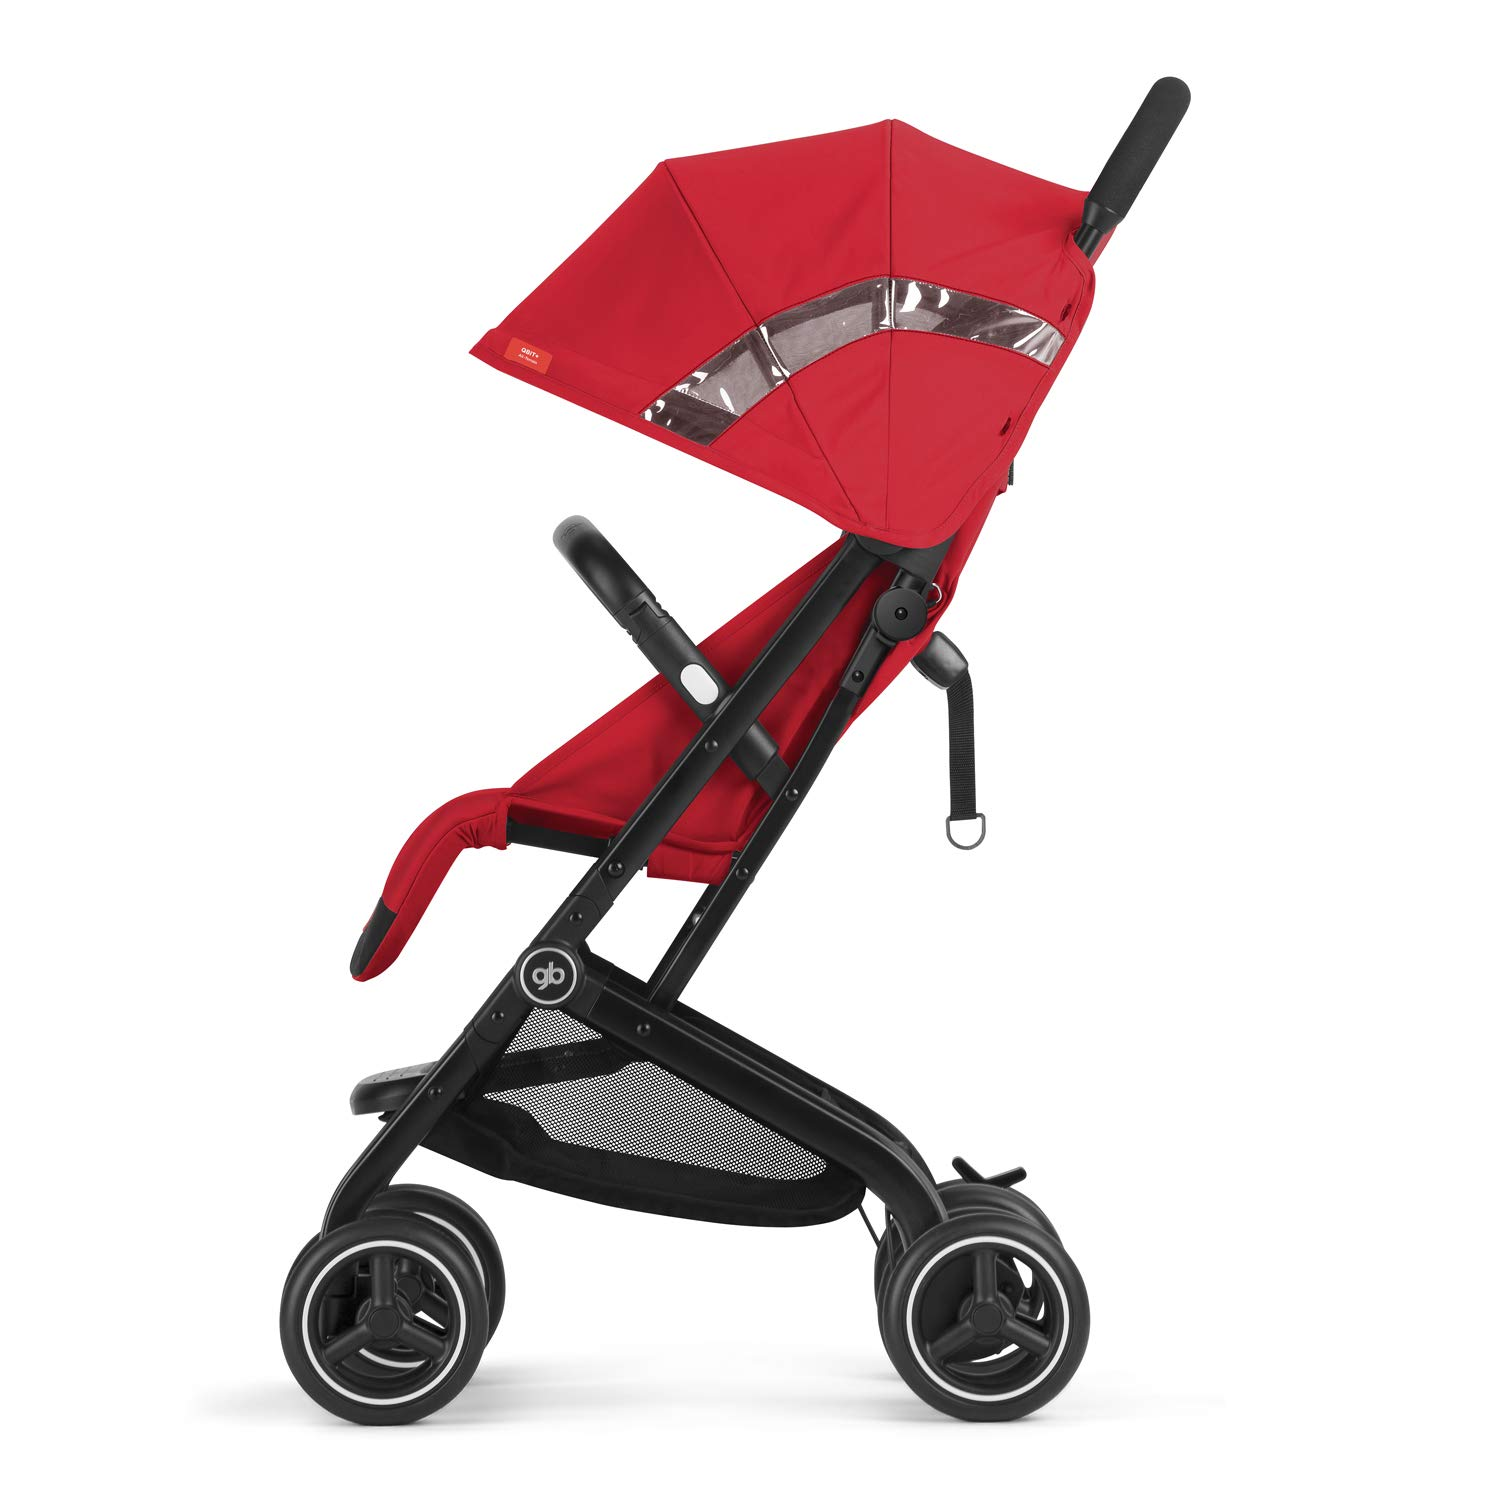 gb 2019 Buggy QBIT+ All-Terrain with Bumper Bar''Night Blue''- from Birth up to 17 kg (Approx. 4 Years) - GoodBaby QBIT Plus by gb (Image #4)